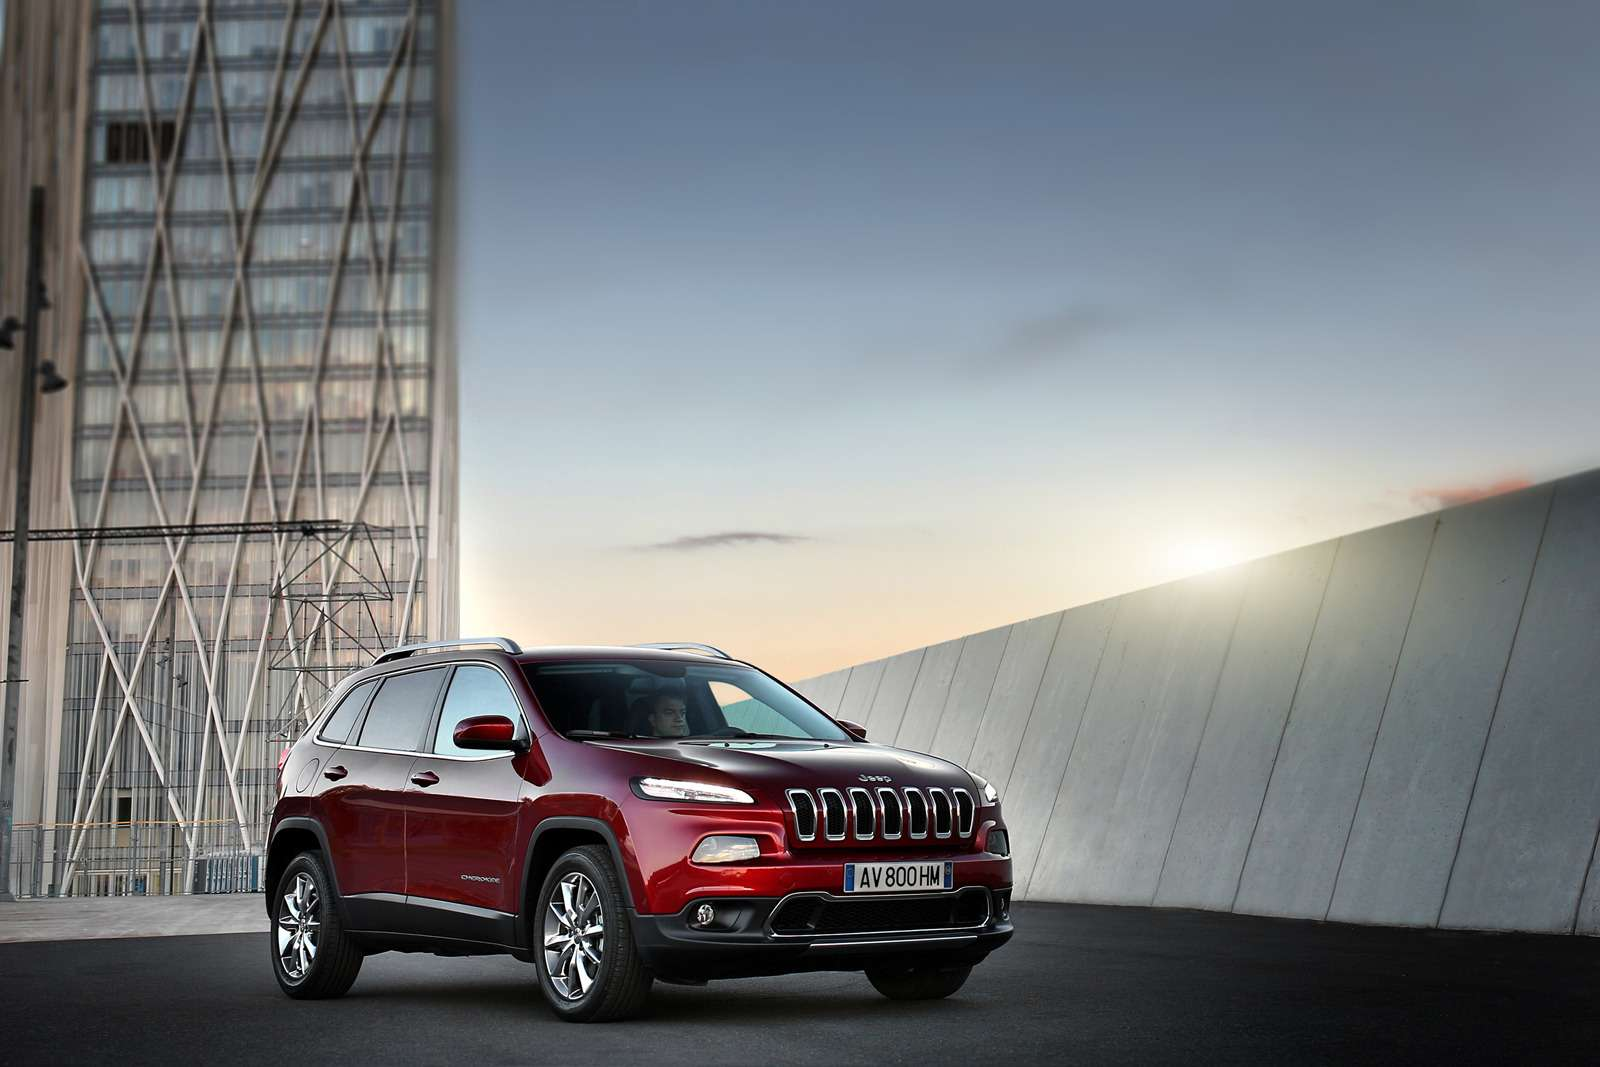 Theall-new 2014 Jeep Cherokee Limited isthe first mid-size SUV